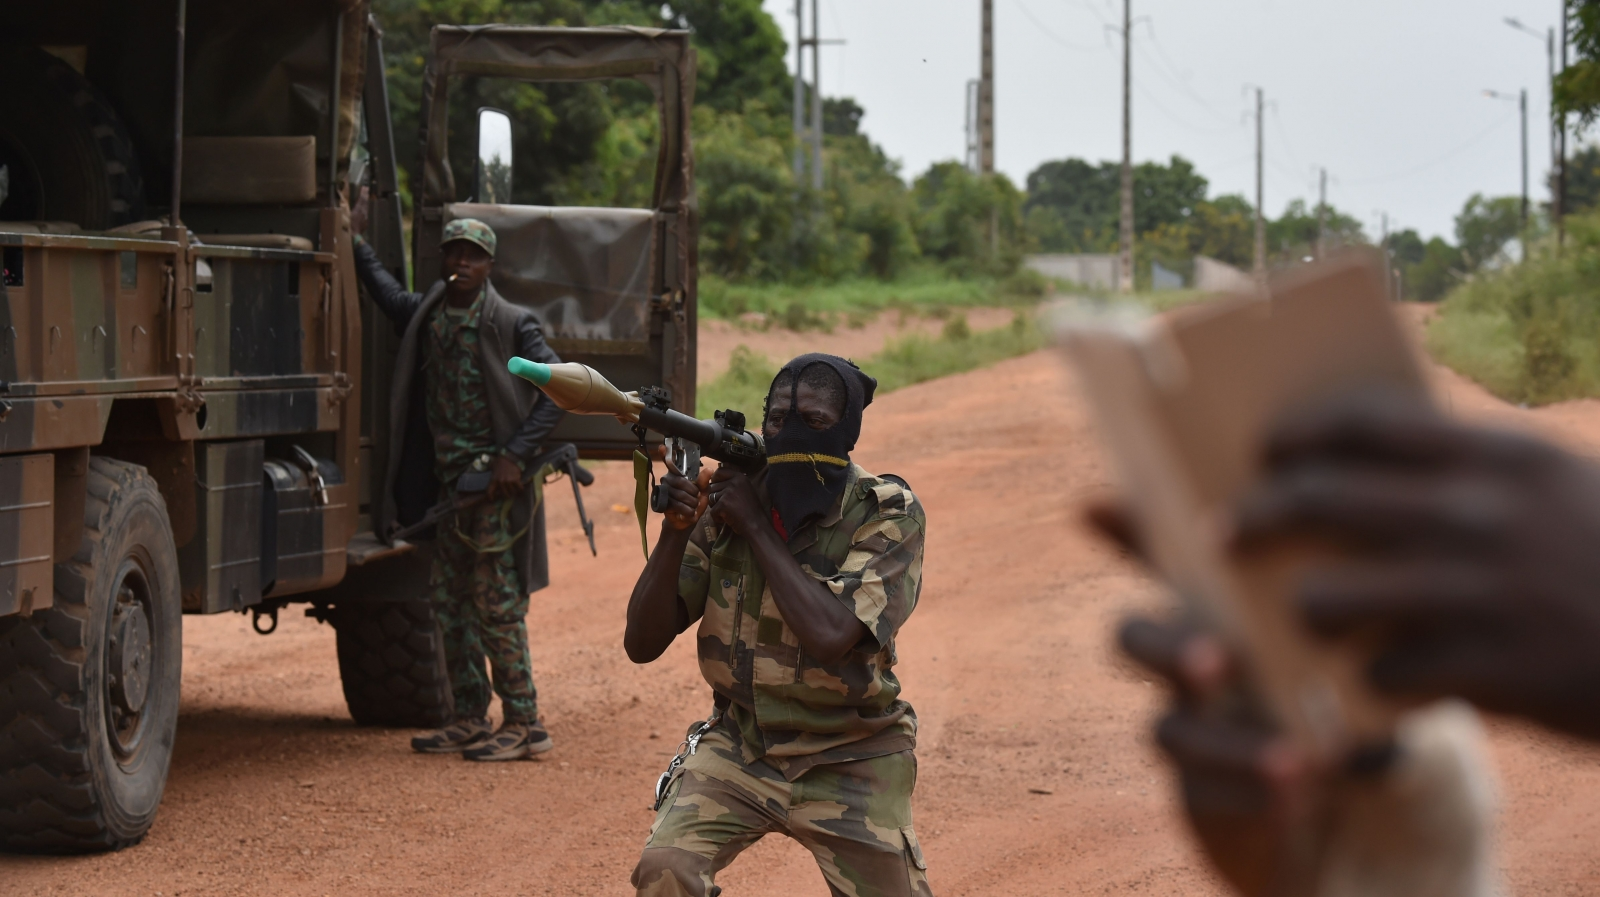 Ivory Coast defense minister says deal reached with soldiers